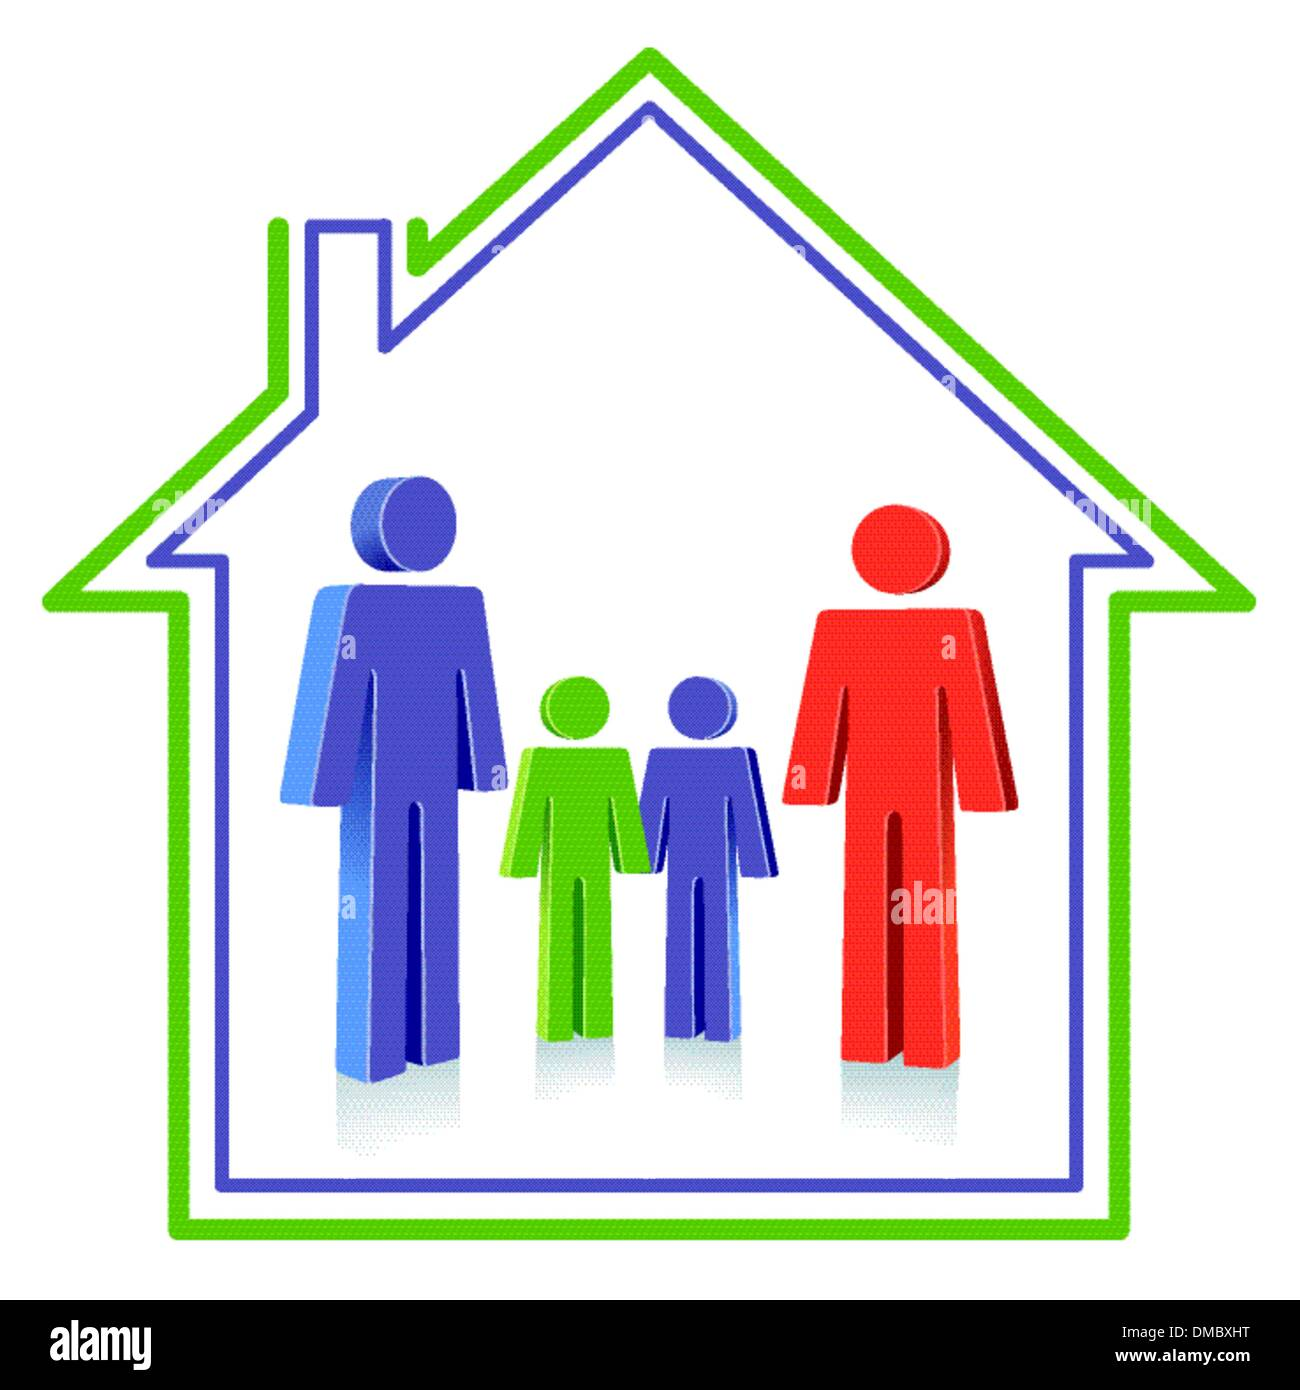 Family home - Stock Image